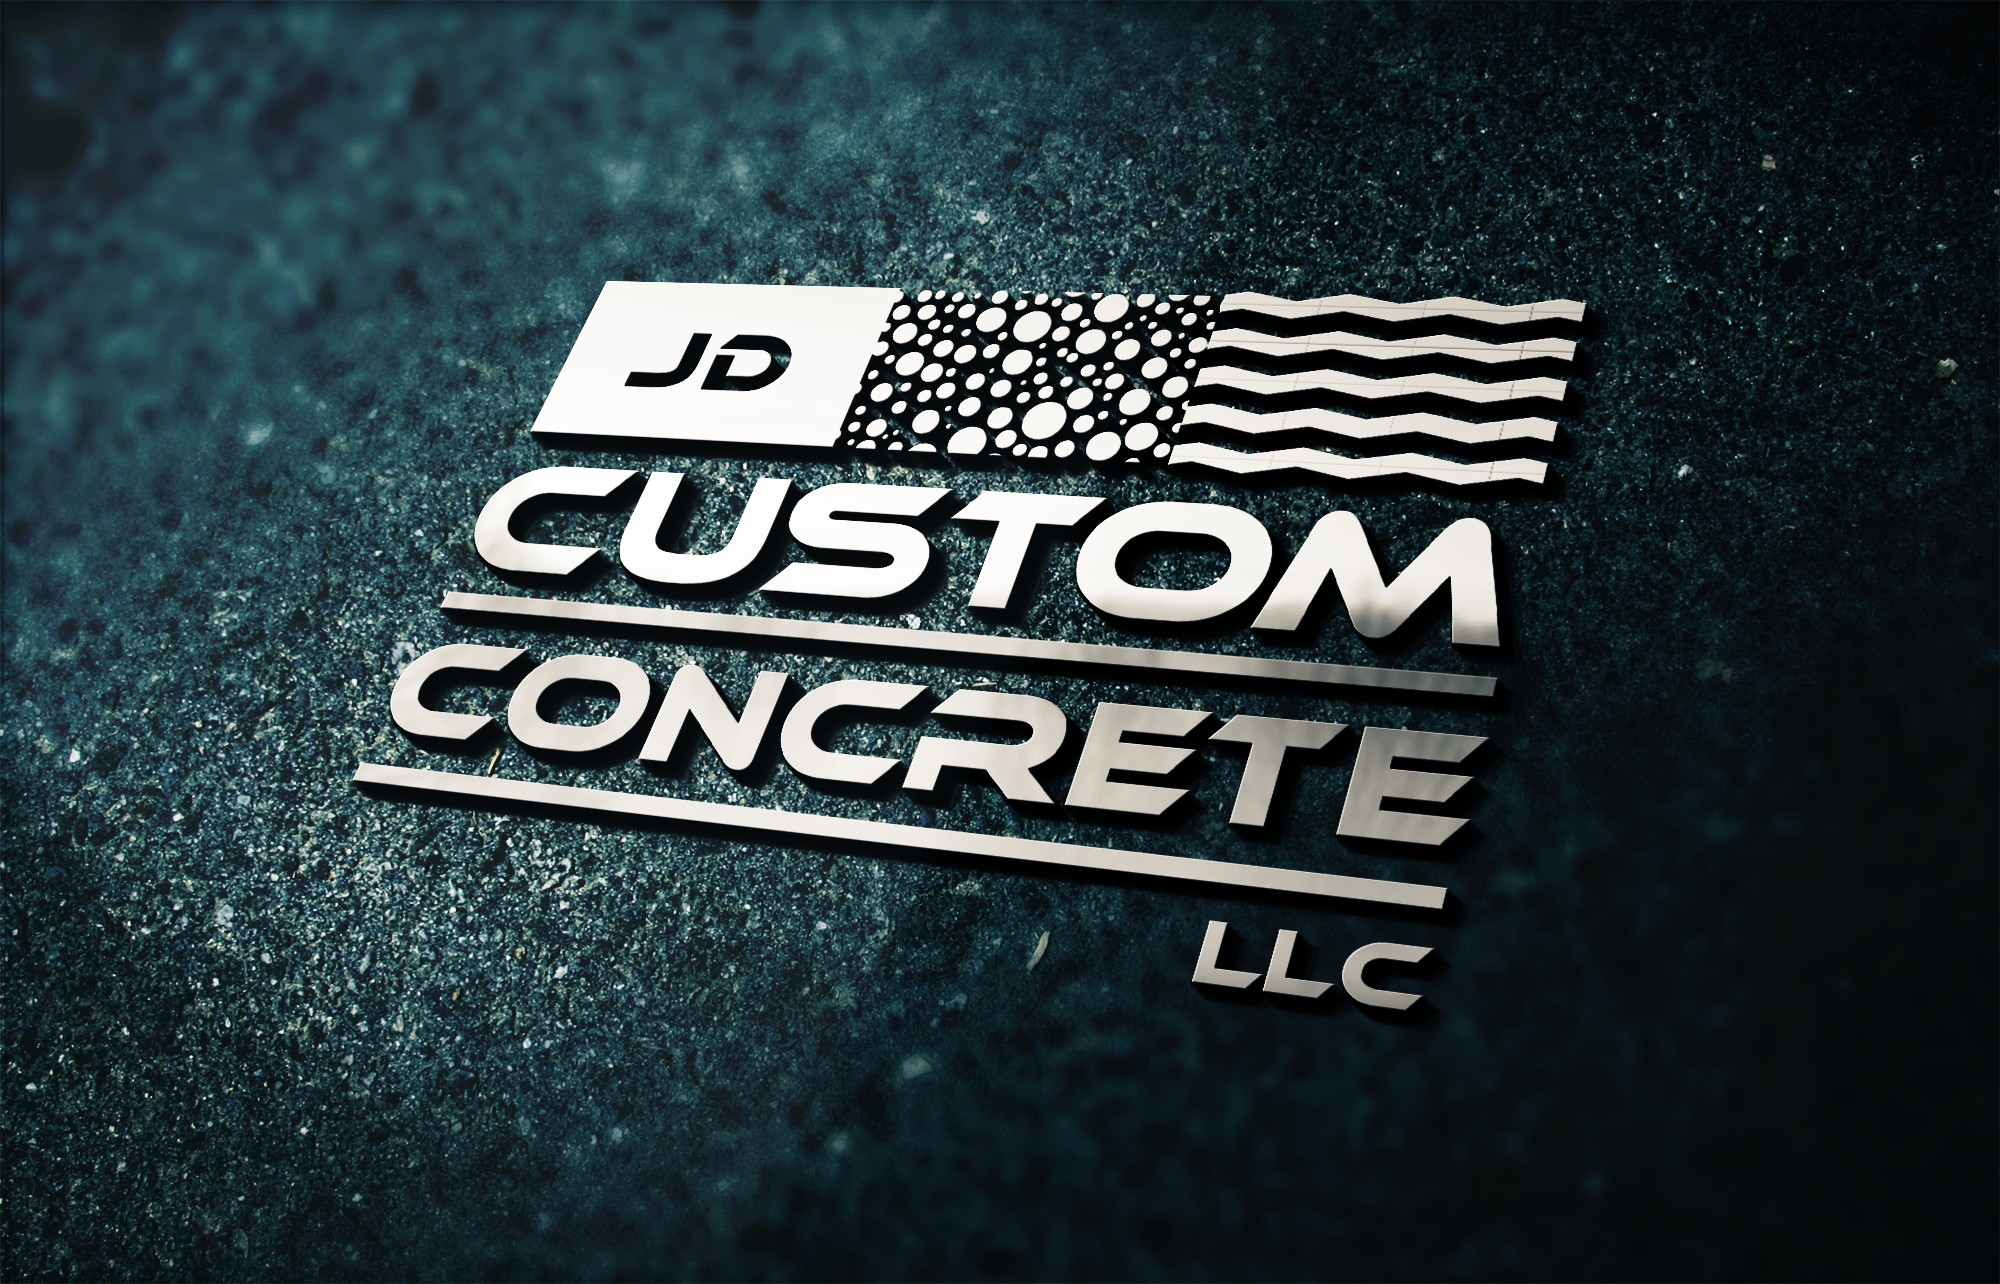 Broaden your resume by designing logo for construction industry